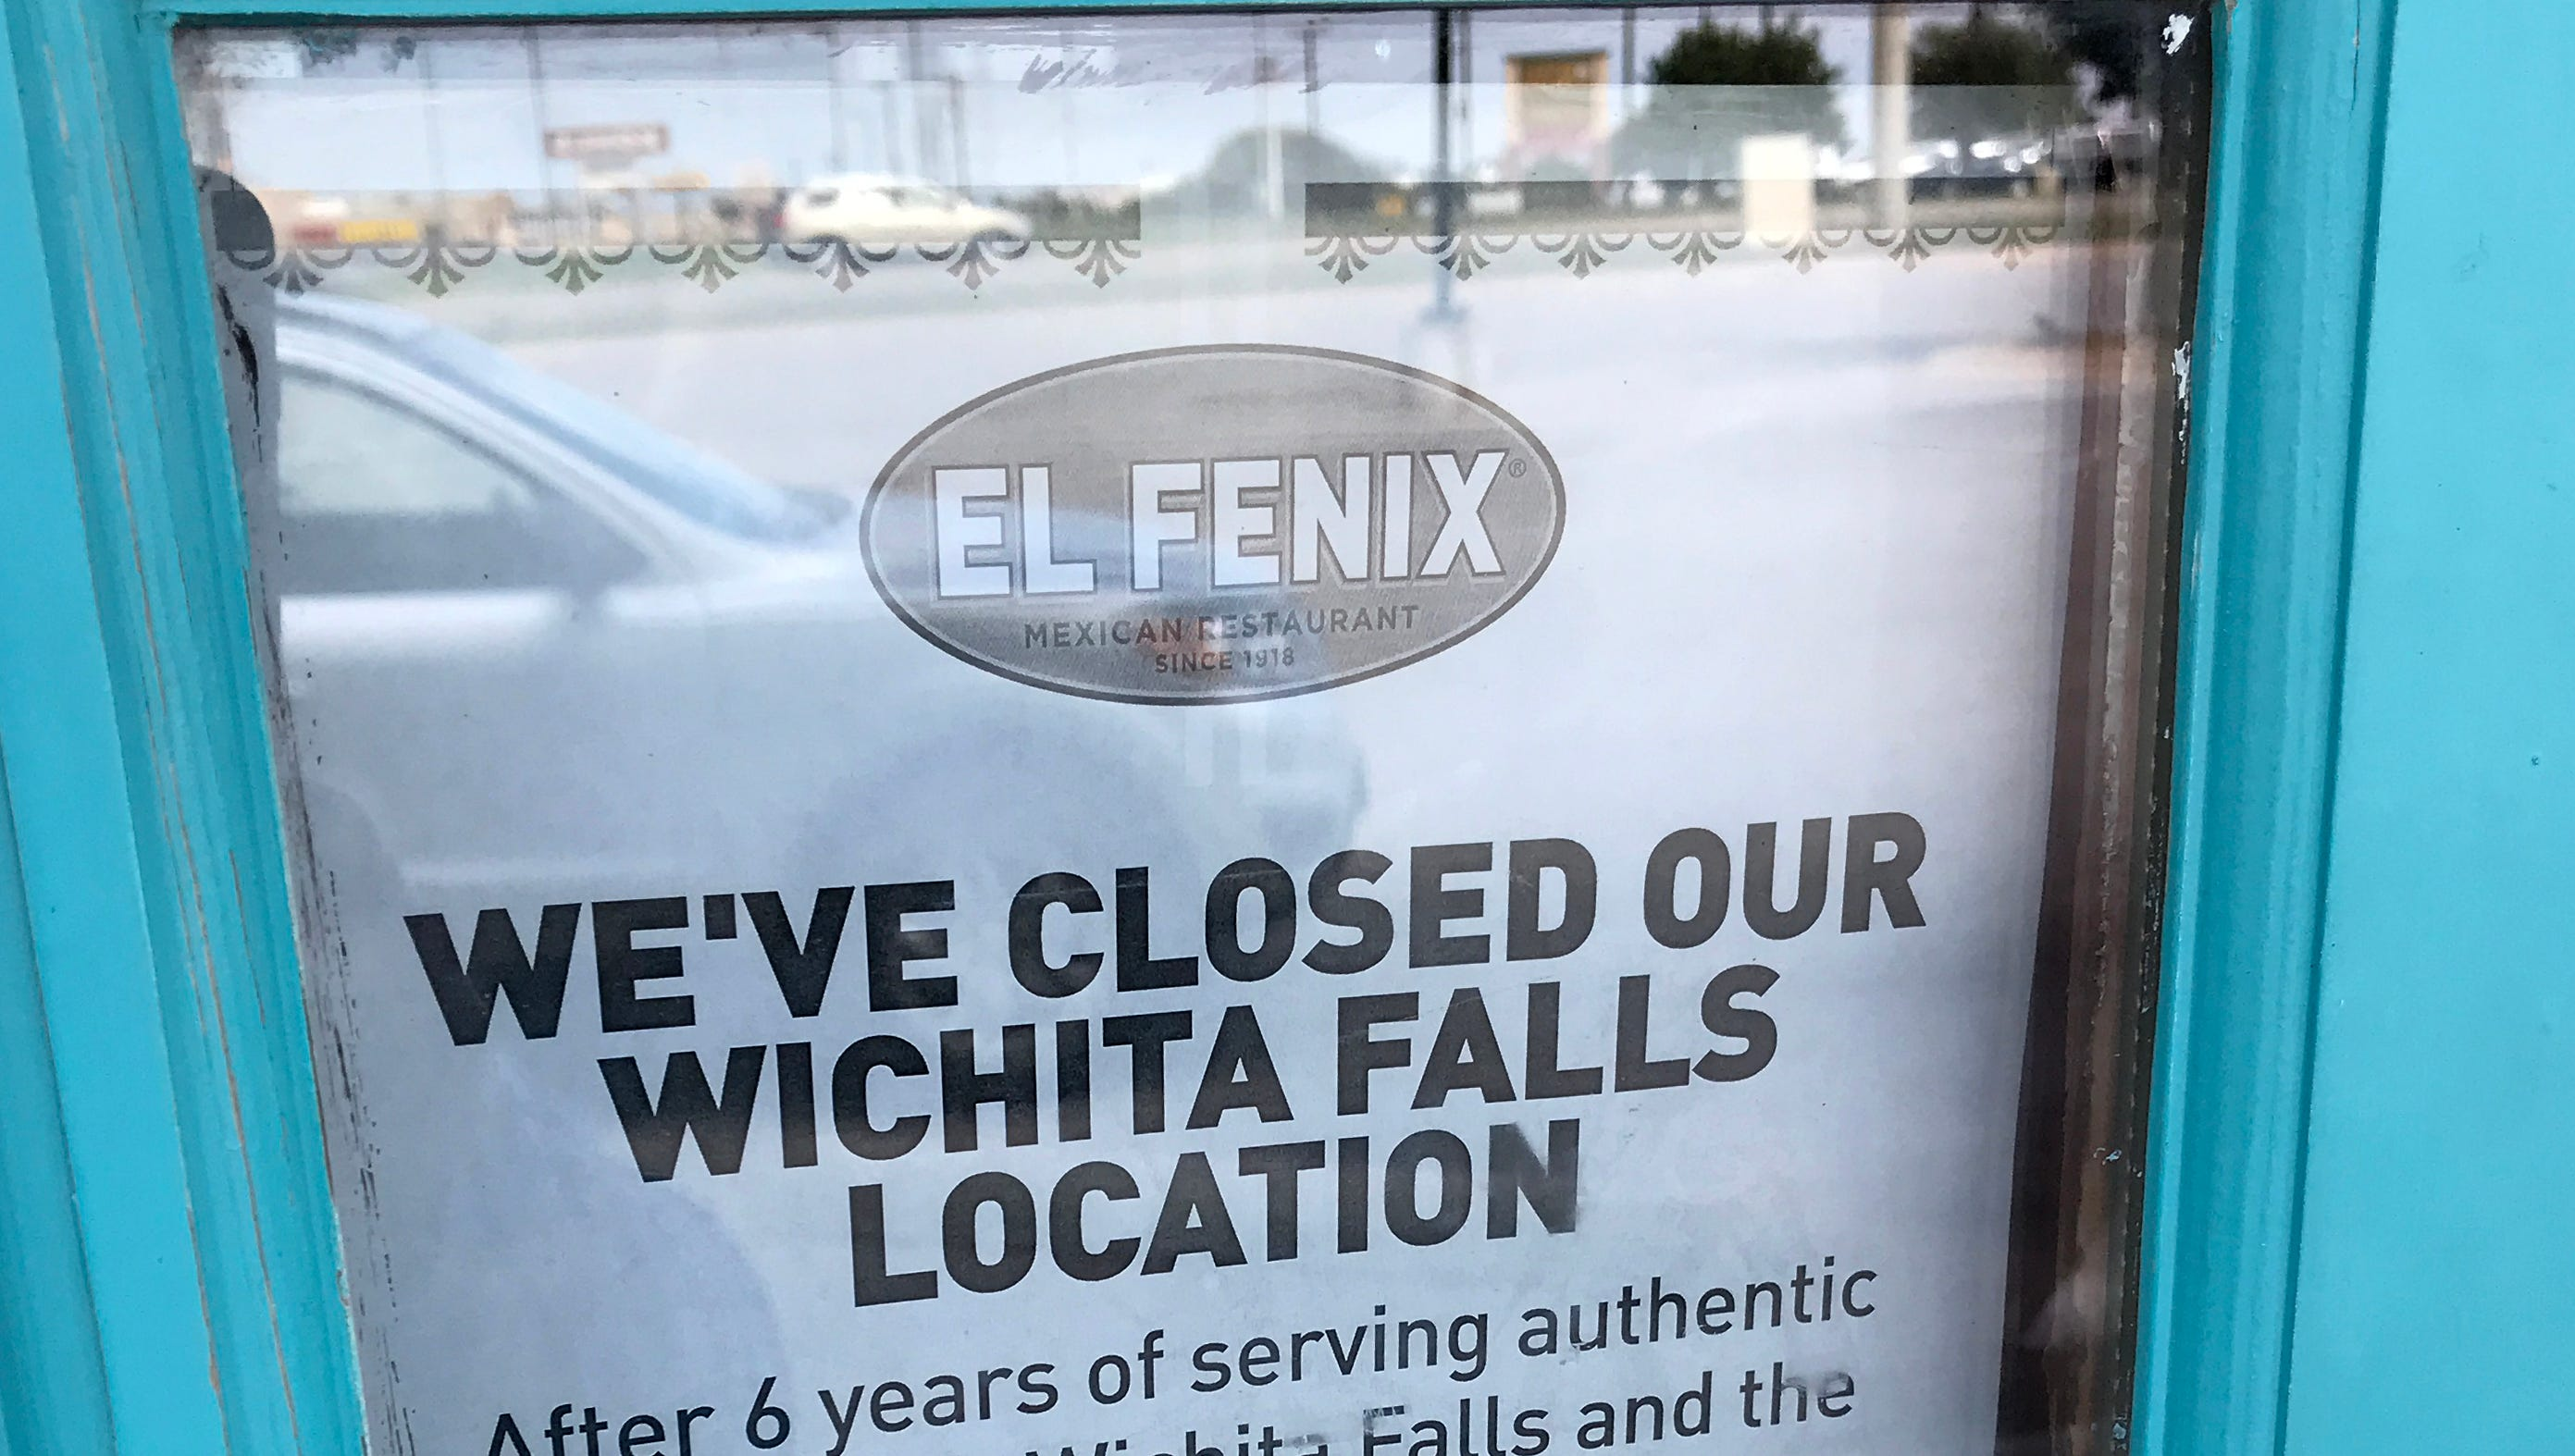 A sign posted in the window of El Fenix served as a notice that the restaurant has closed after 6-years of serving Wichita Falls